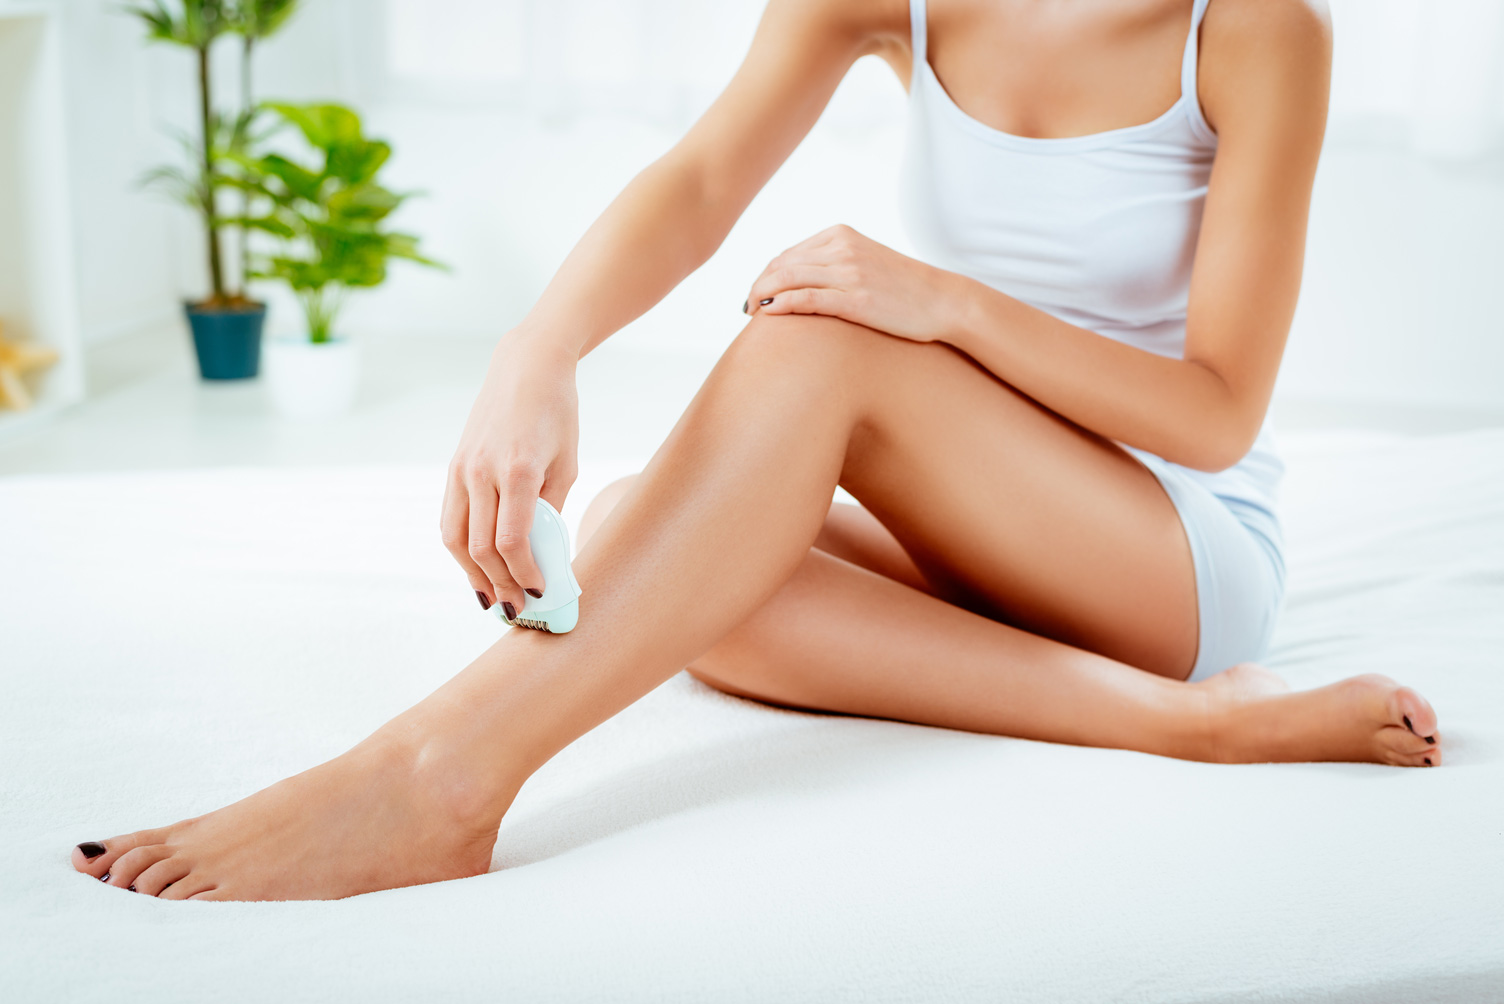 How to Painlessly Remove Unwanted Hair (at Home)?